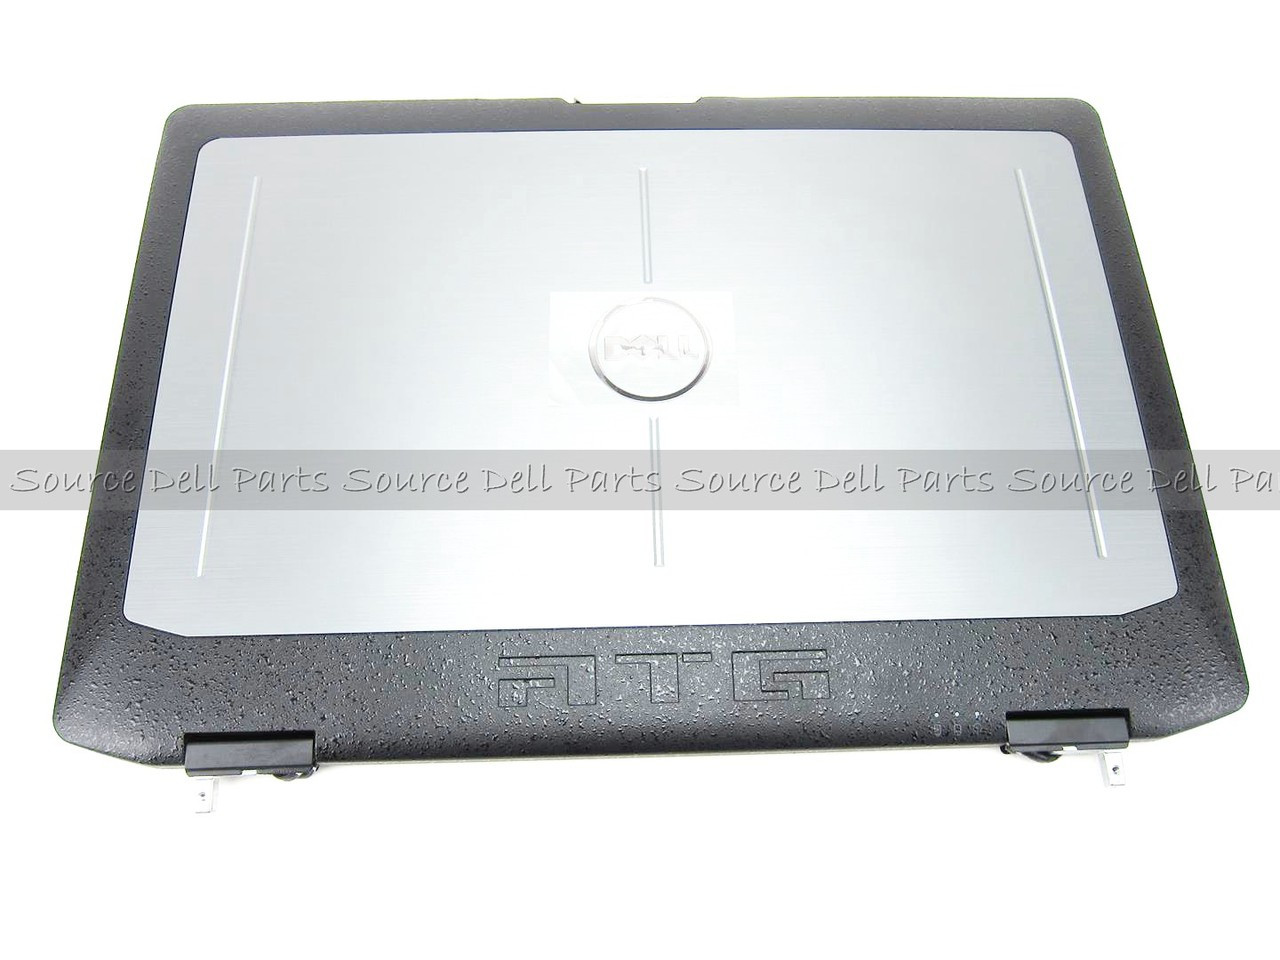 """Dell Latitude E6430 ATG Touchscreen 14"""" LCD Back Cover Lid & Hinges - CPDRV (B)"""